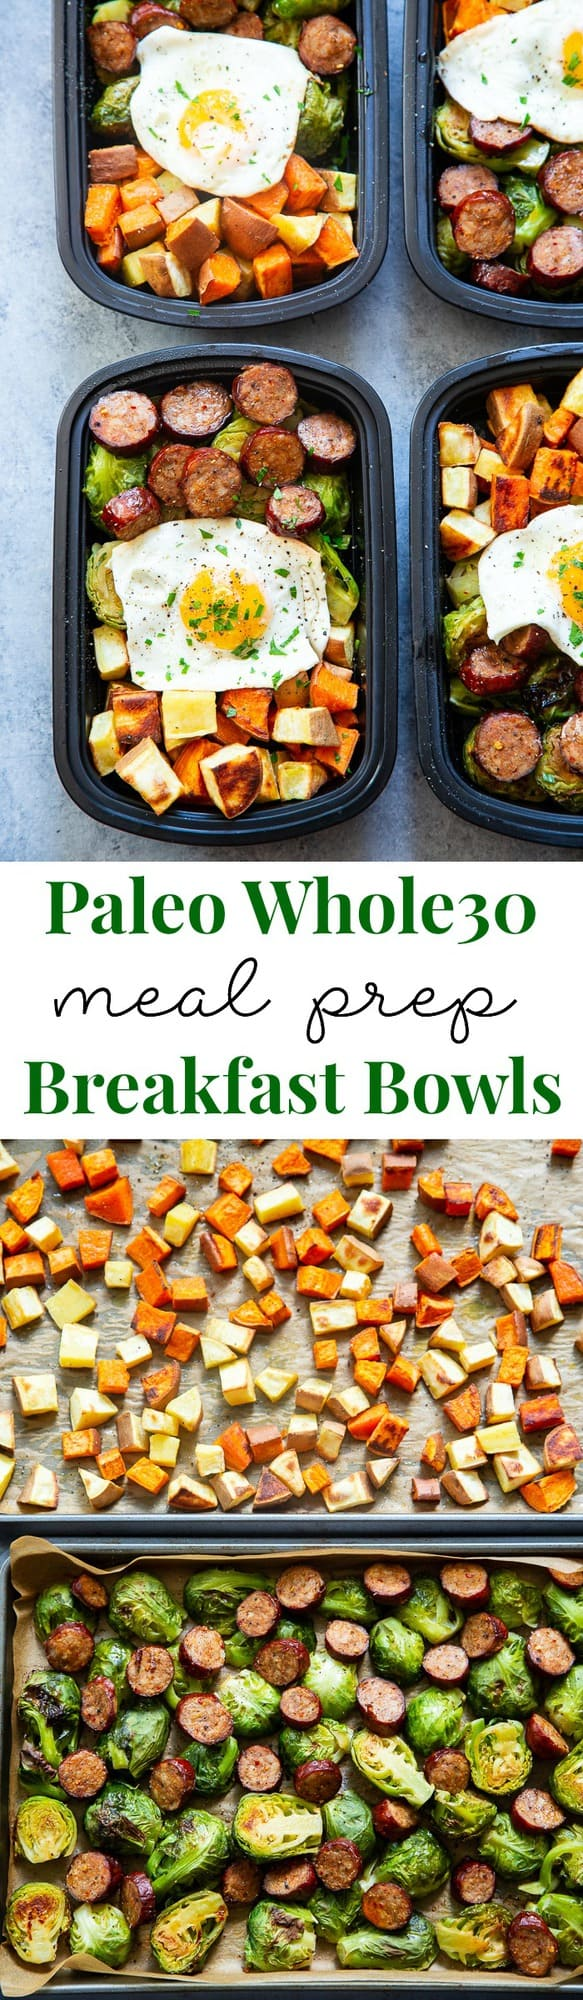 Get breakfast ready the night before with these easy sweet potato, sausage, veggie, and egg Paleo breakfast meal prep bowls!  They're simple, Whole30 complaint, dairy free, junk free, tasty and filling!